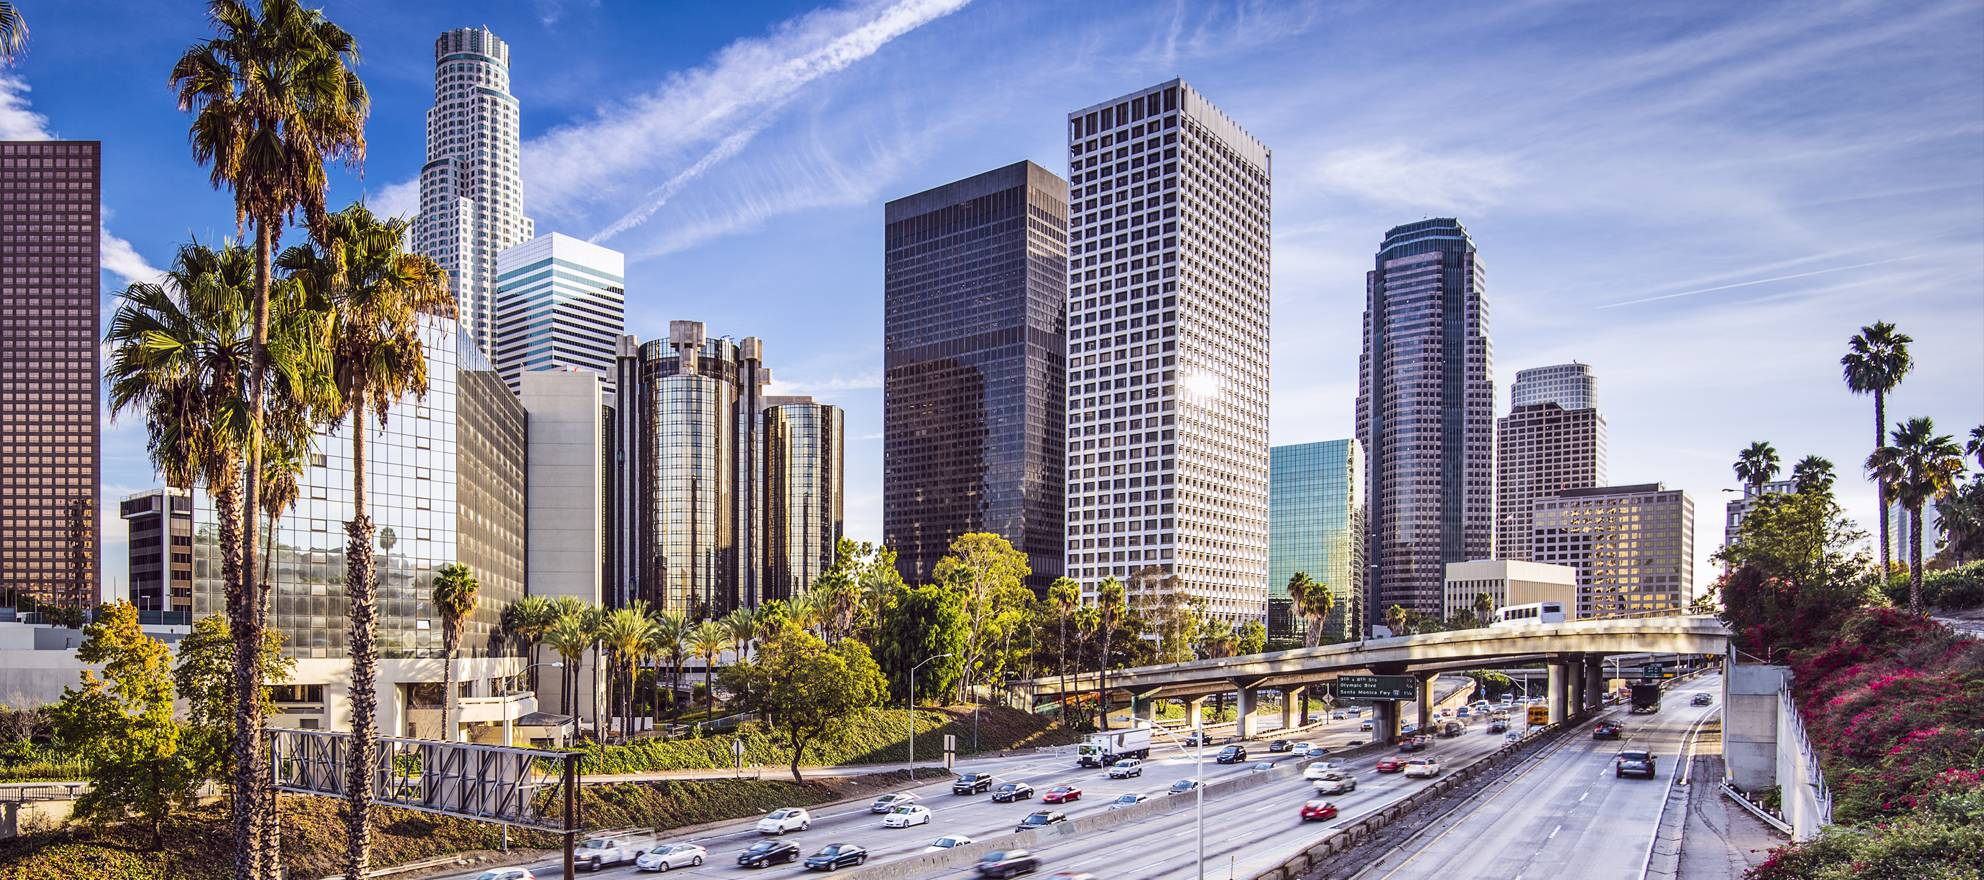 October 2015: Los Angeles real estate industry partnerships and developments